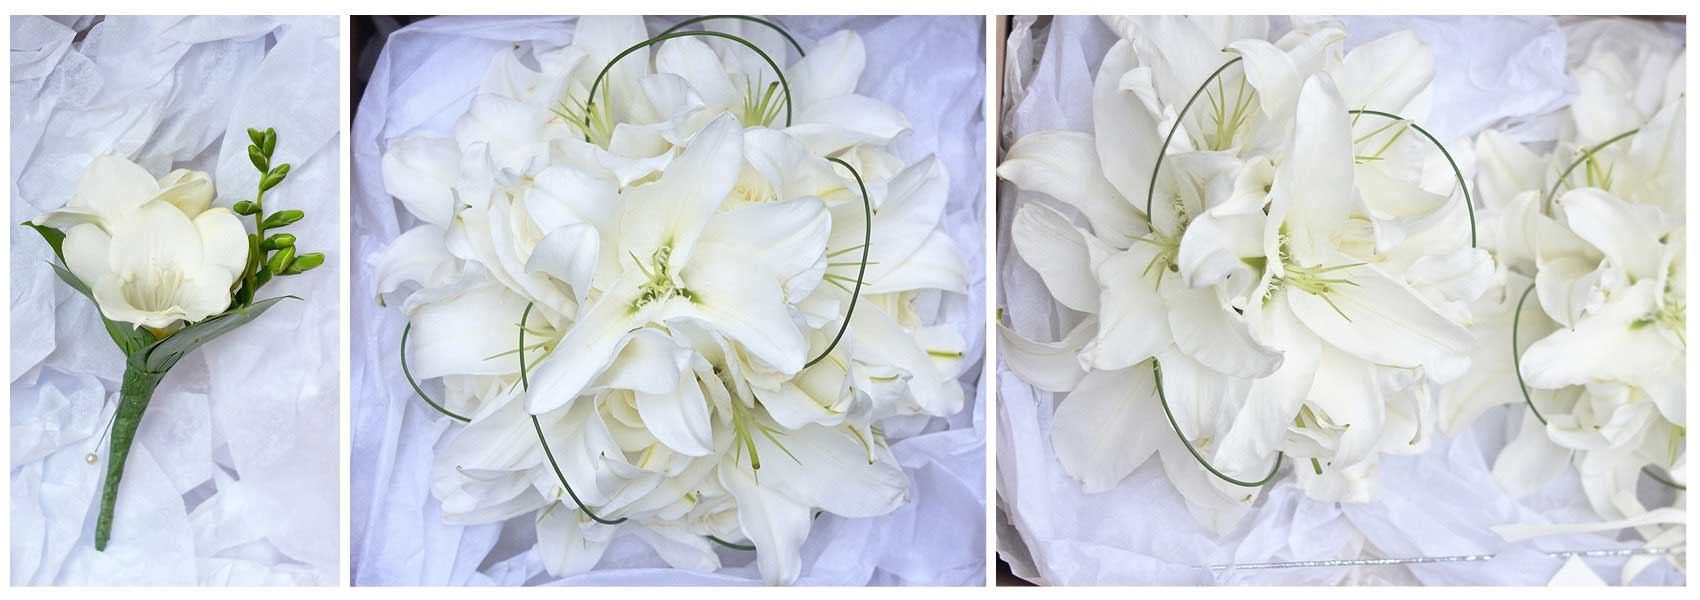 Wedding Bouquets And Buttonholes : Fiori by lynne wedding flowers southampton bouquets